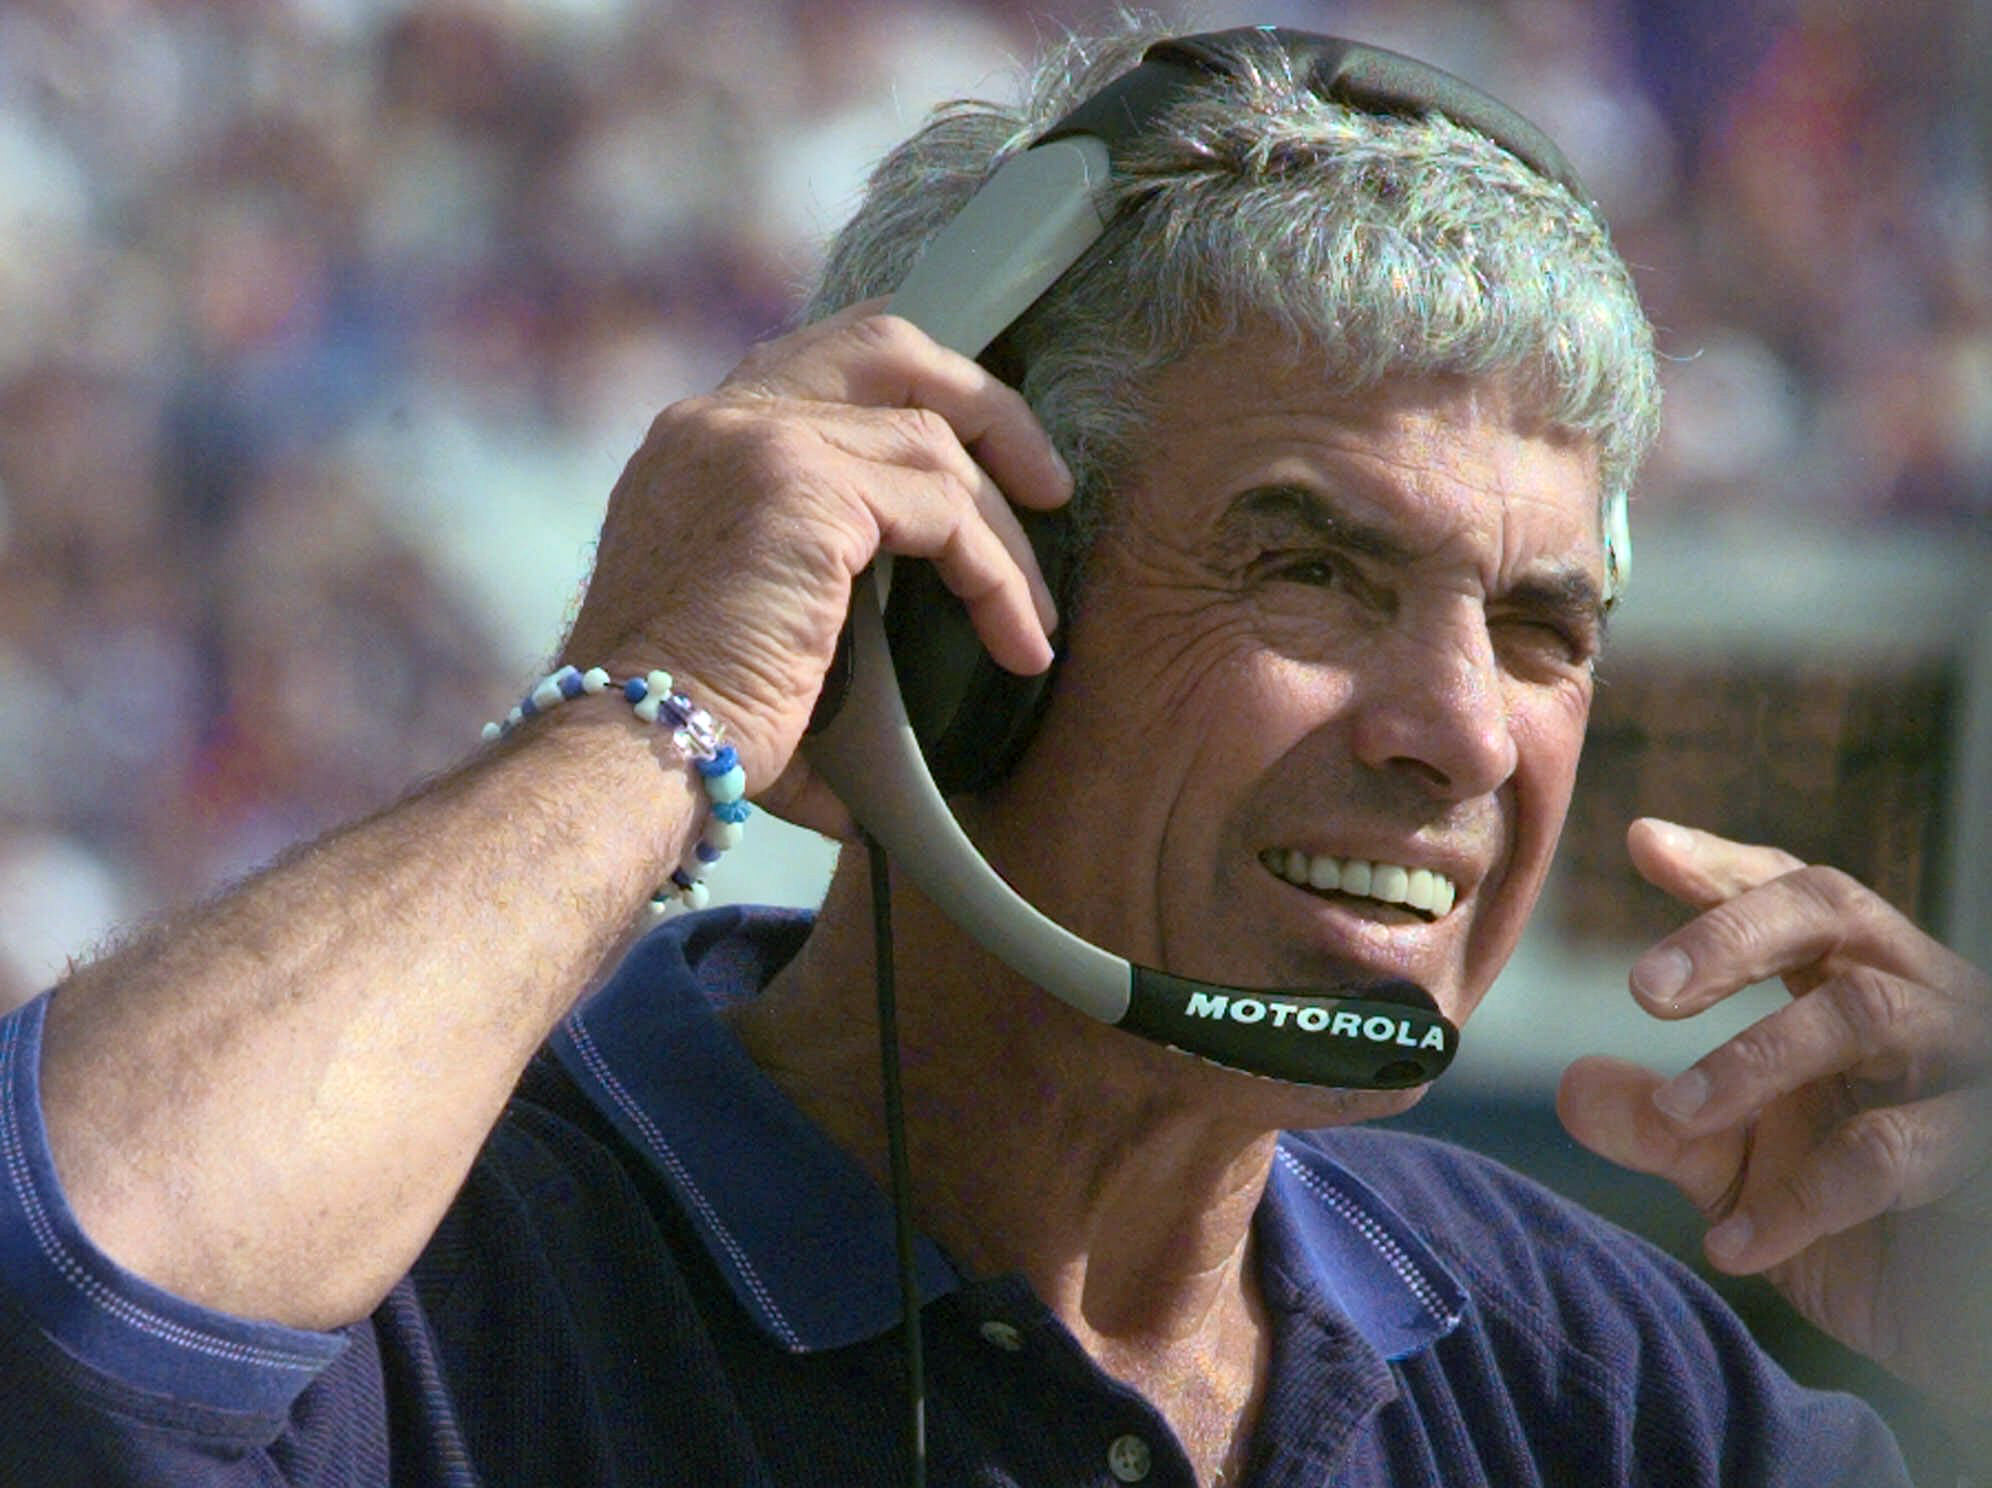 FILE - In this Sunday, Oct. 1, 2000 file photo, Indianapolis Colts coach Jim Mora watches the an NFL football game against the Buffalo Bills during the fourth quarter at Ralph Wilson Stadium in Orchard Park, N.Y. After losing a wild-card round game to Hou